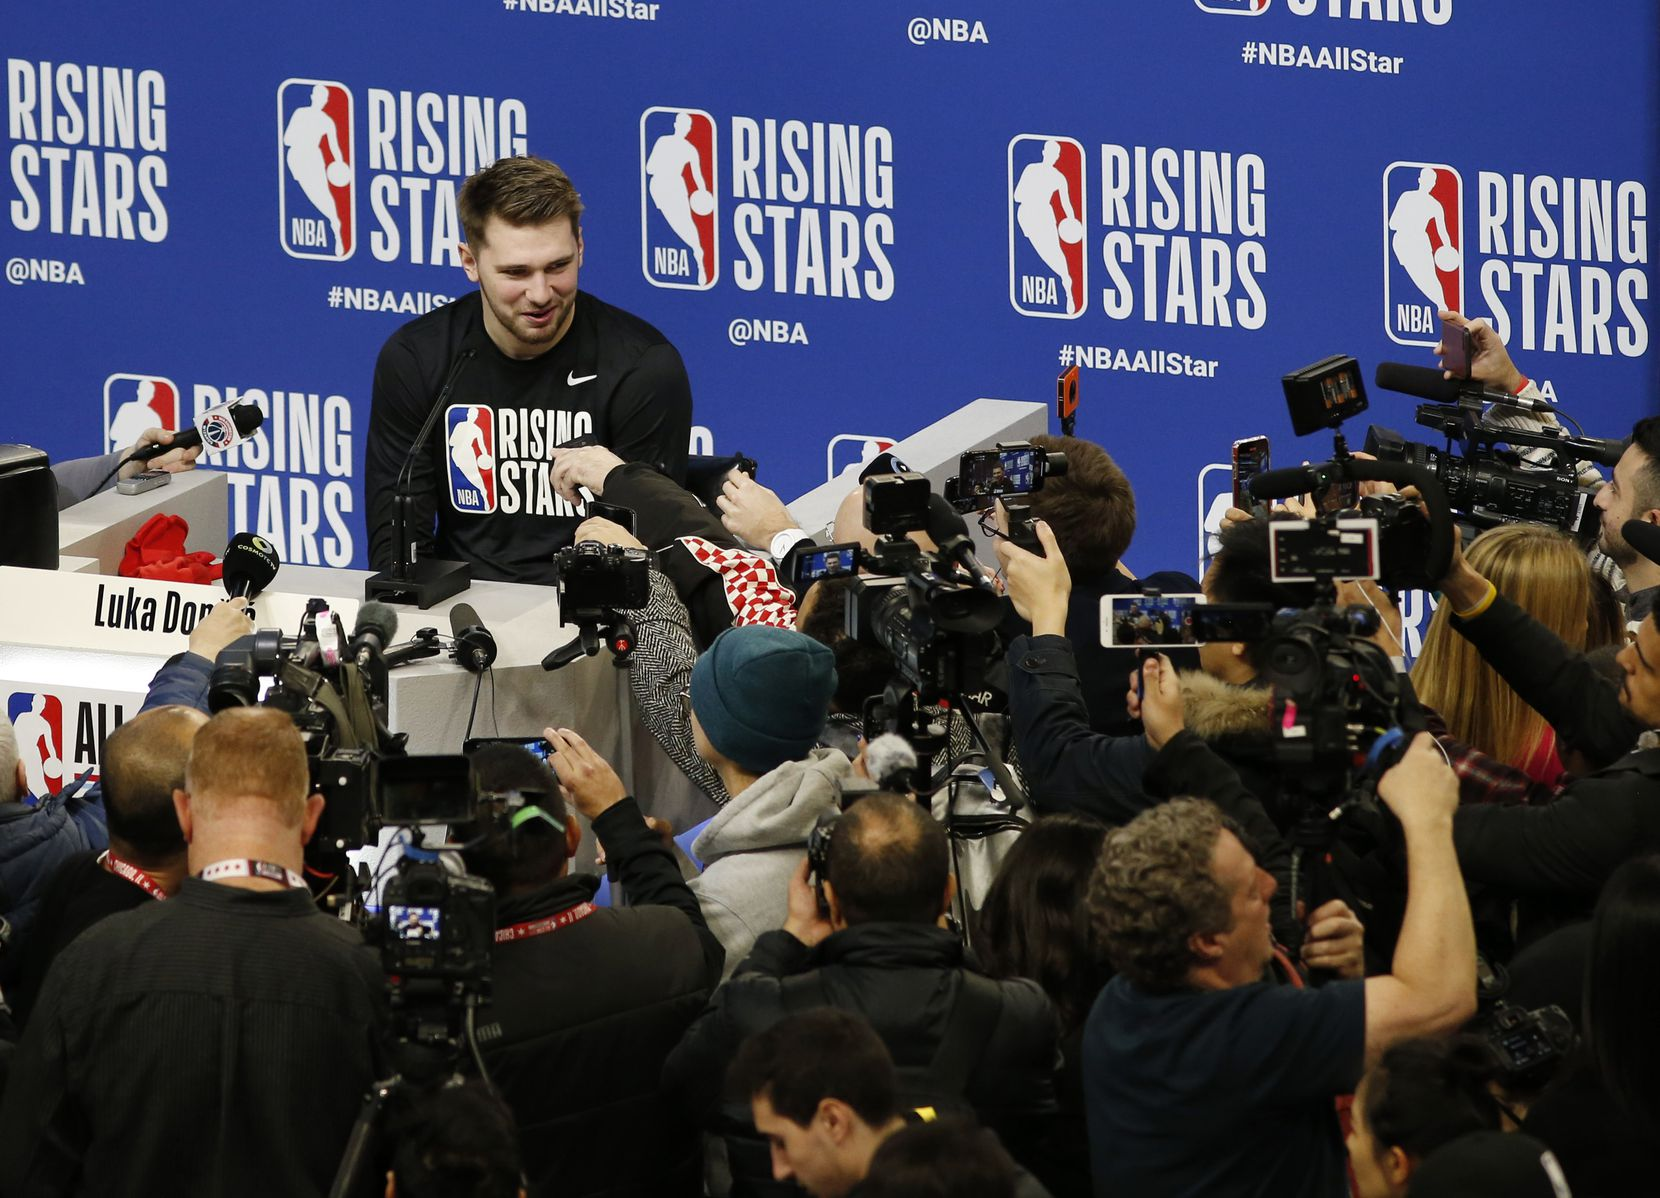 Dallas Mavericks forward Luka Doncic (77) answers questions from the media during NBA Rising Stars practice and media availability during NBA All Star 2020 at Wintrust Arena in Chicago on Friday, February 14, 2020.